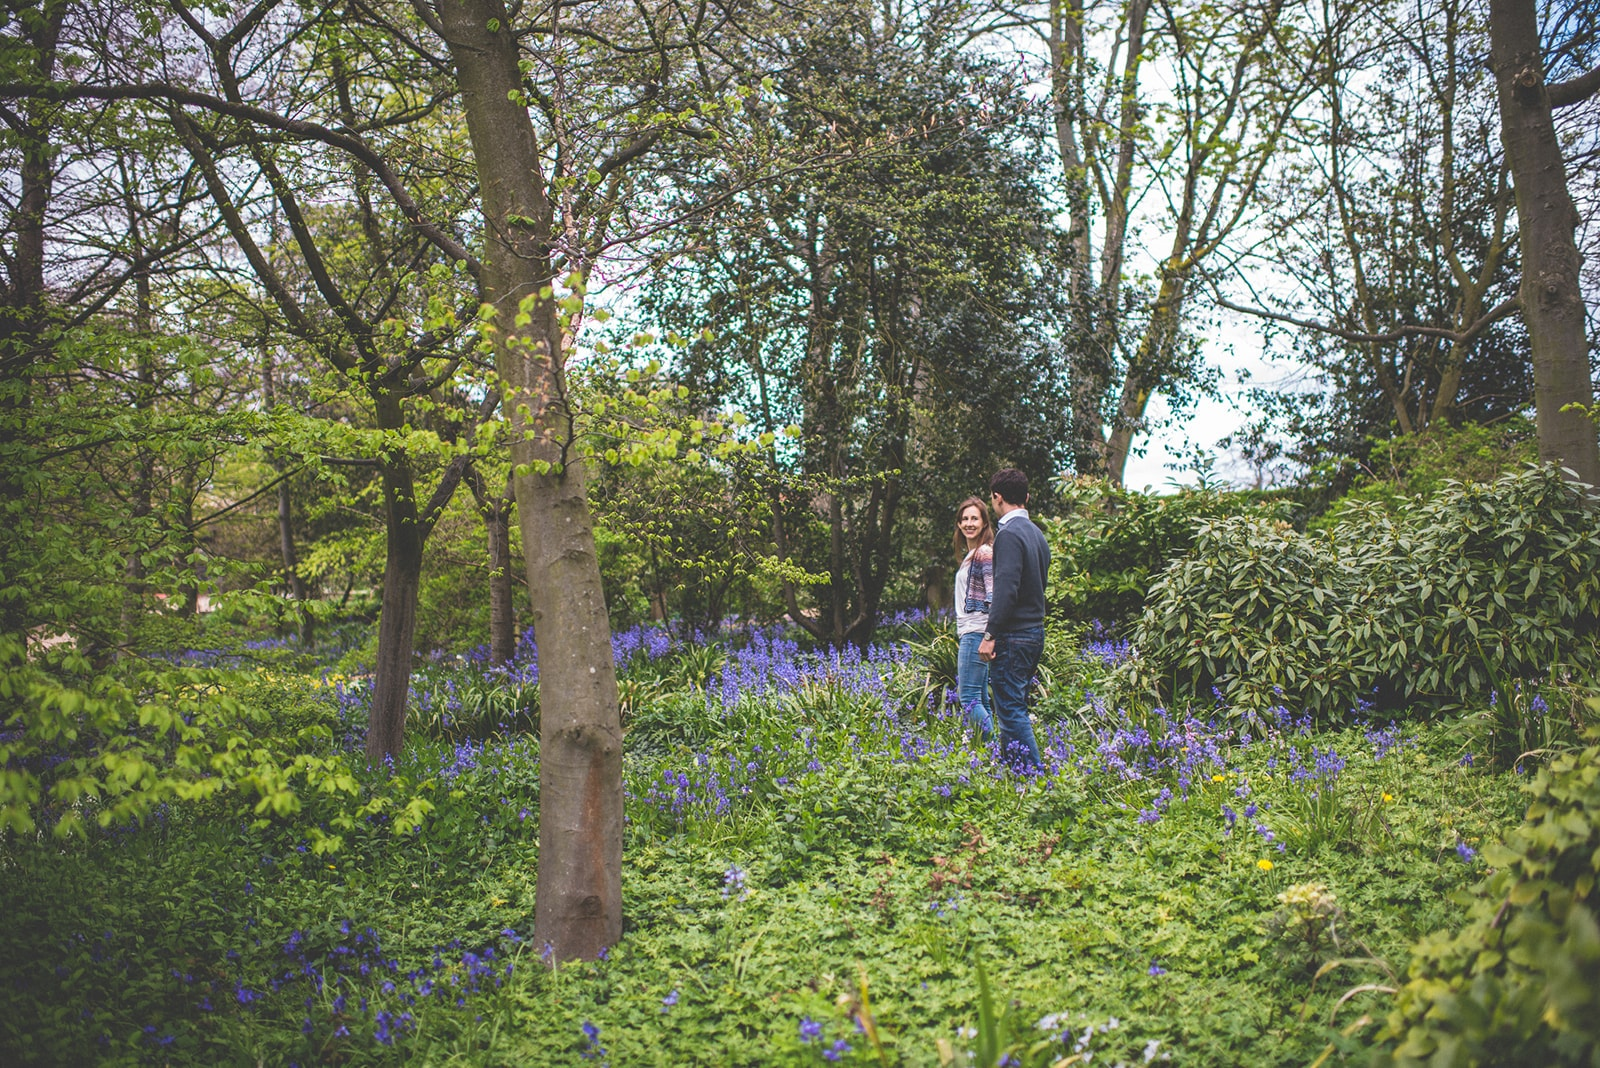 Engaged couple walking through a sea of bluebells at the Hurlingham Club